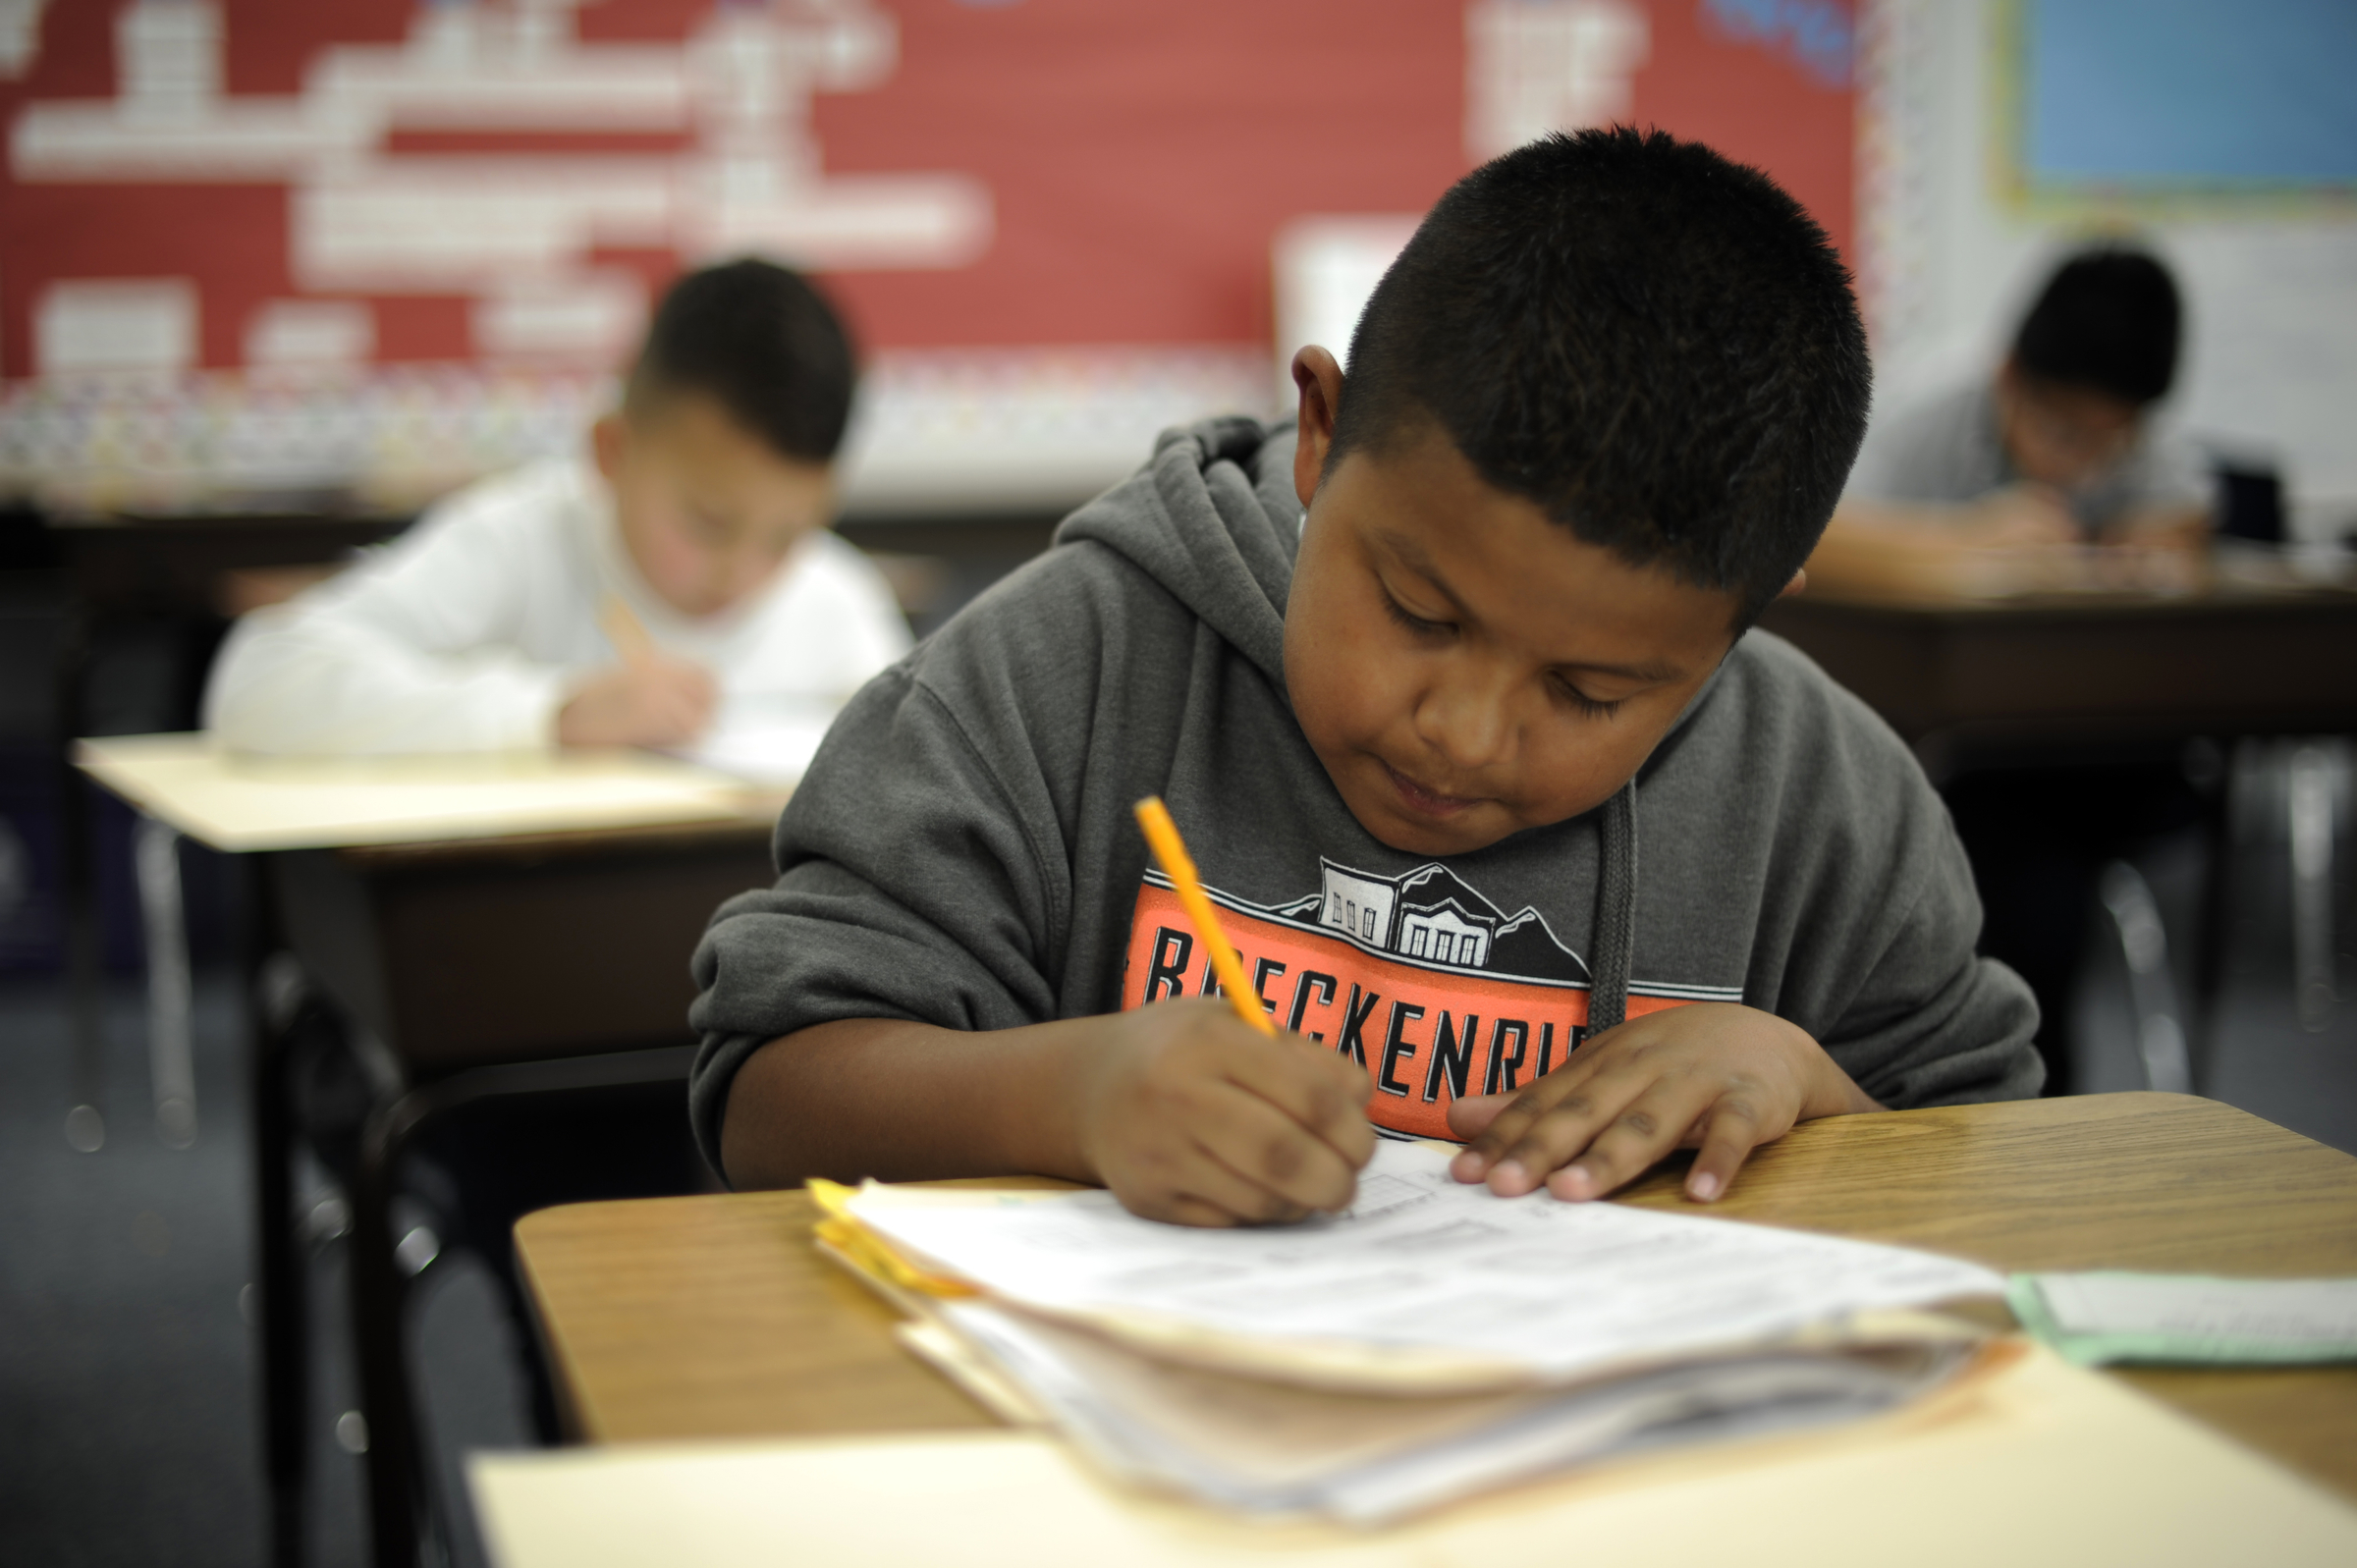 Jorge Saucedo of 4th grade is in the math class at Jose Valdez Elementary School in Denver, CO.